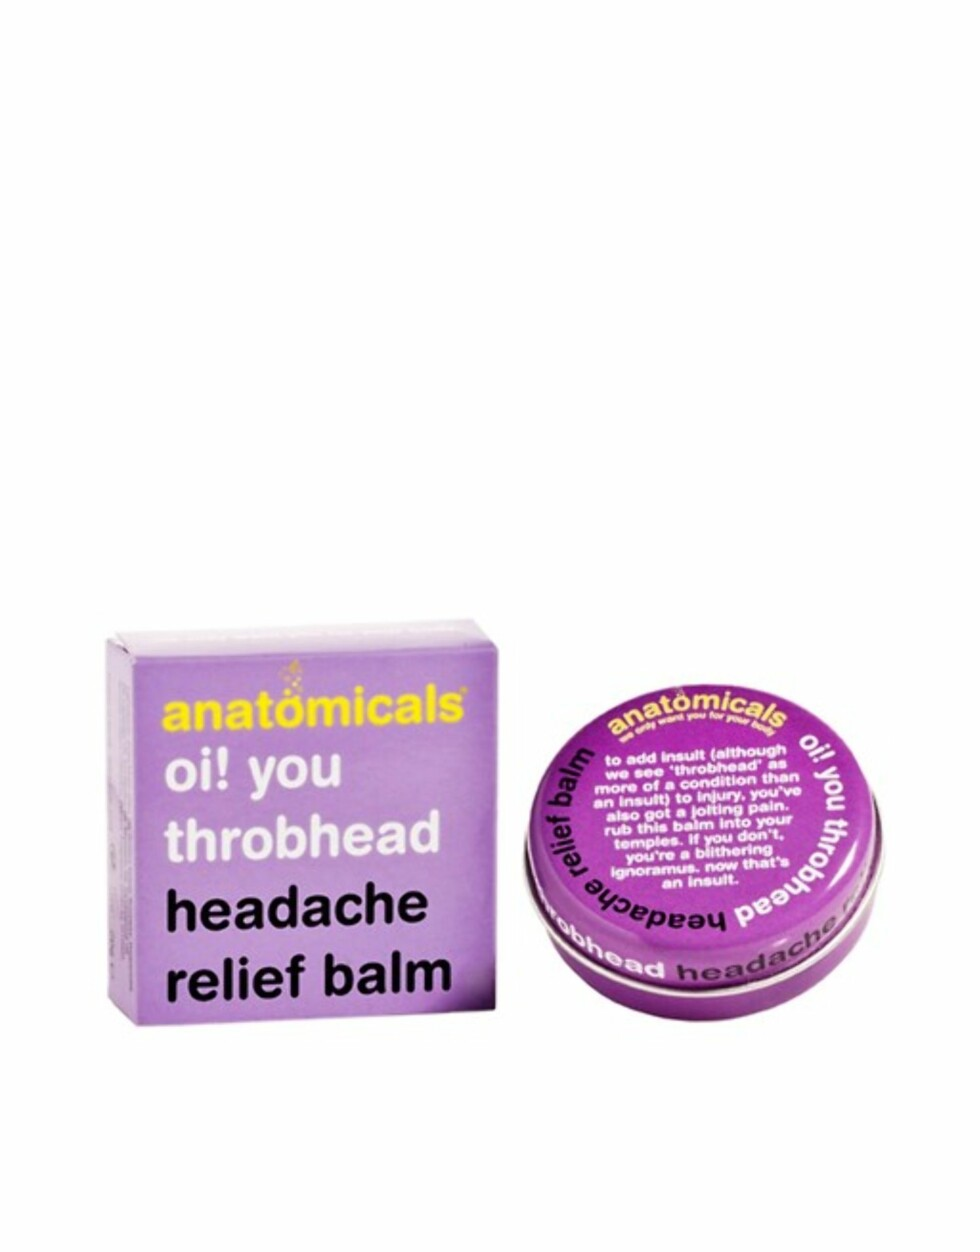 Headache Balm fra Asos |46,-| http://www.asos.com/anatomicals/anatomicals-oi-you-throbhead-headache-balm-20g/prd/4082667?clr=headachebalm&SearchQuery=sleep&gridcolumn=1&gridrow=7&gridsize=4&pge=1&pgesize=72&totalstyles=87